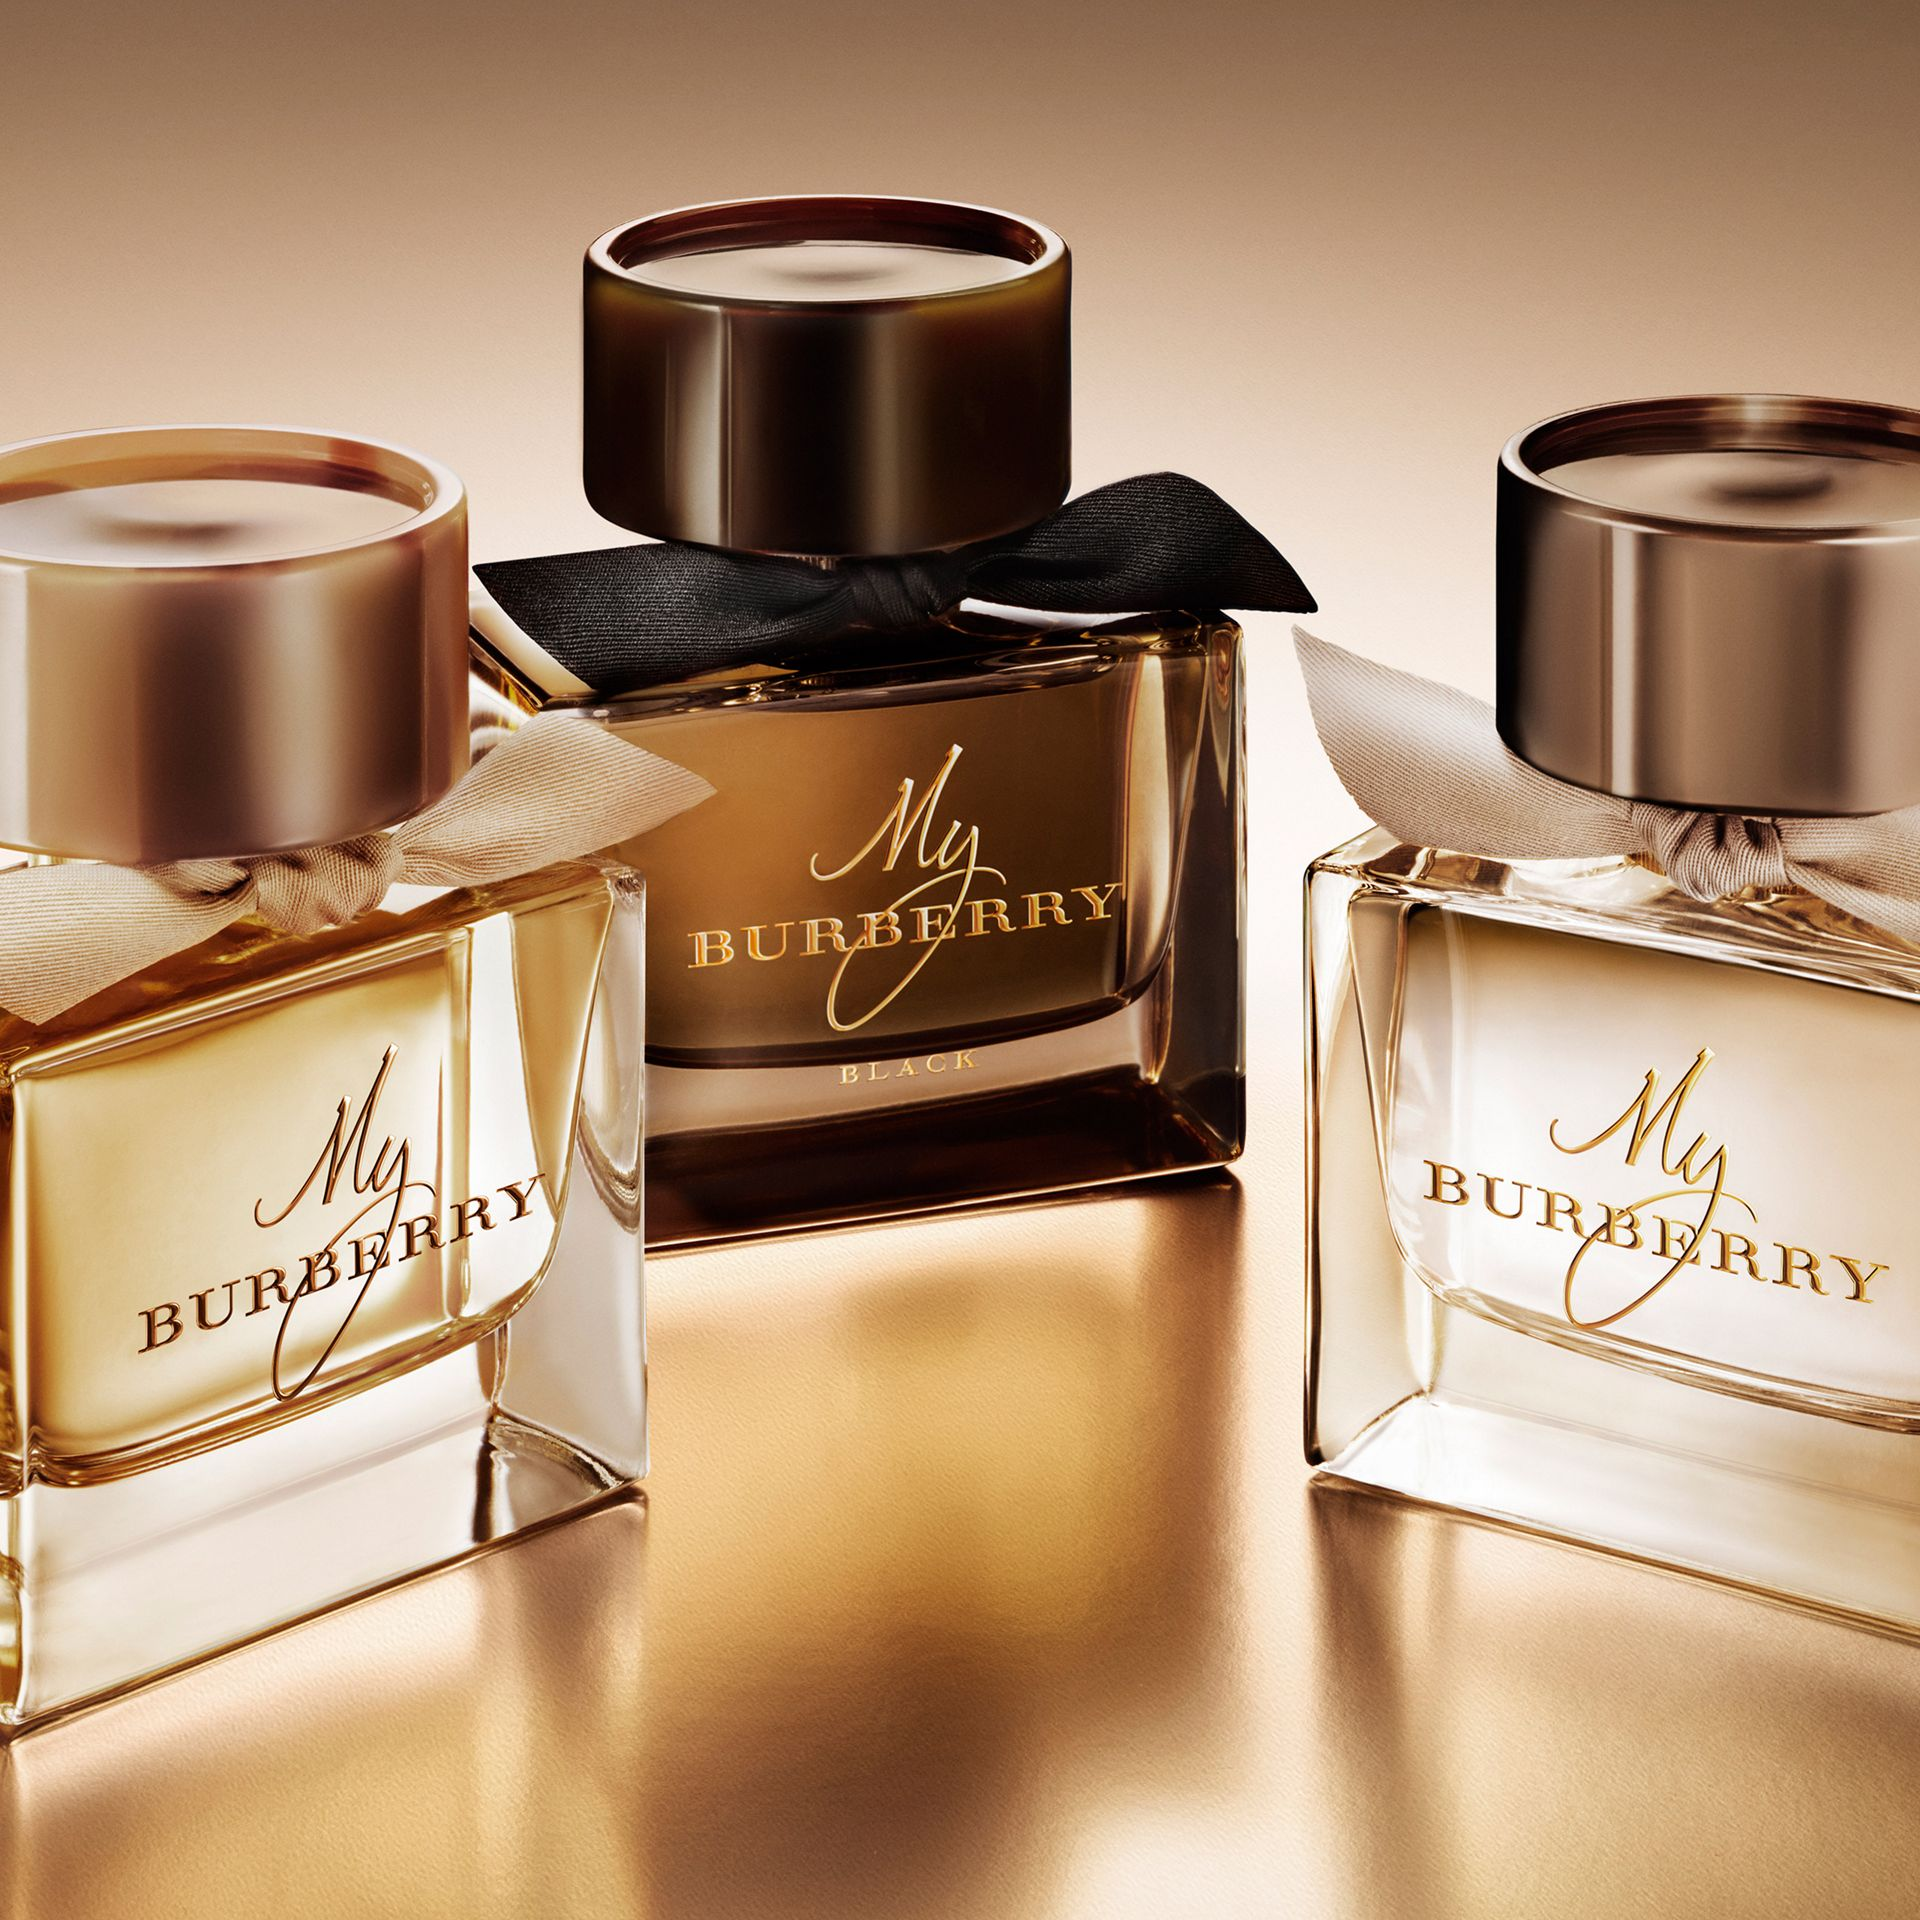 Аромат My Burberry Black, 30 мл (30ml) - Для женщин | Burberry - изображение 5